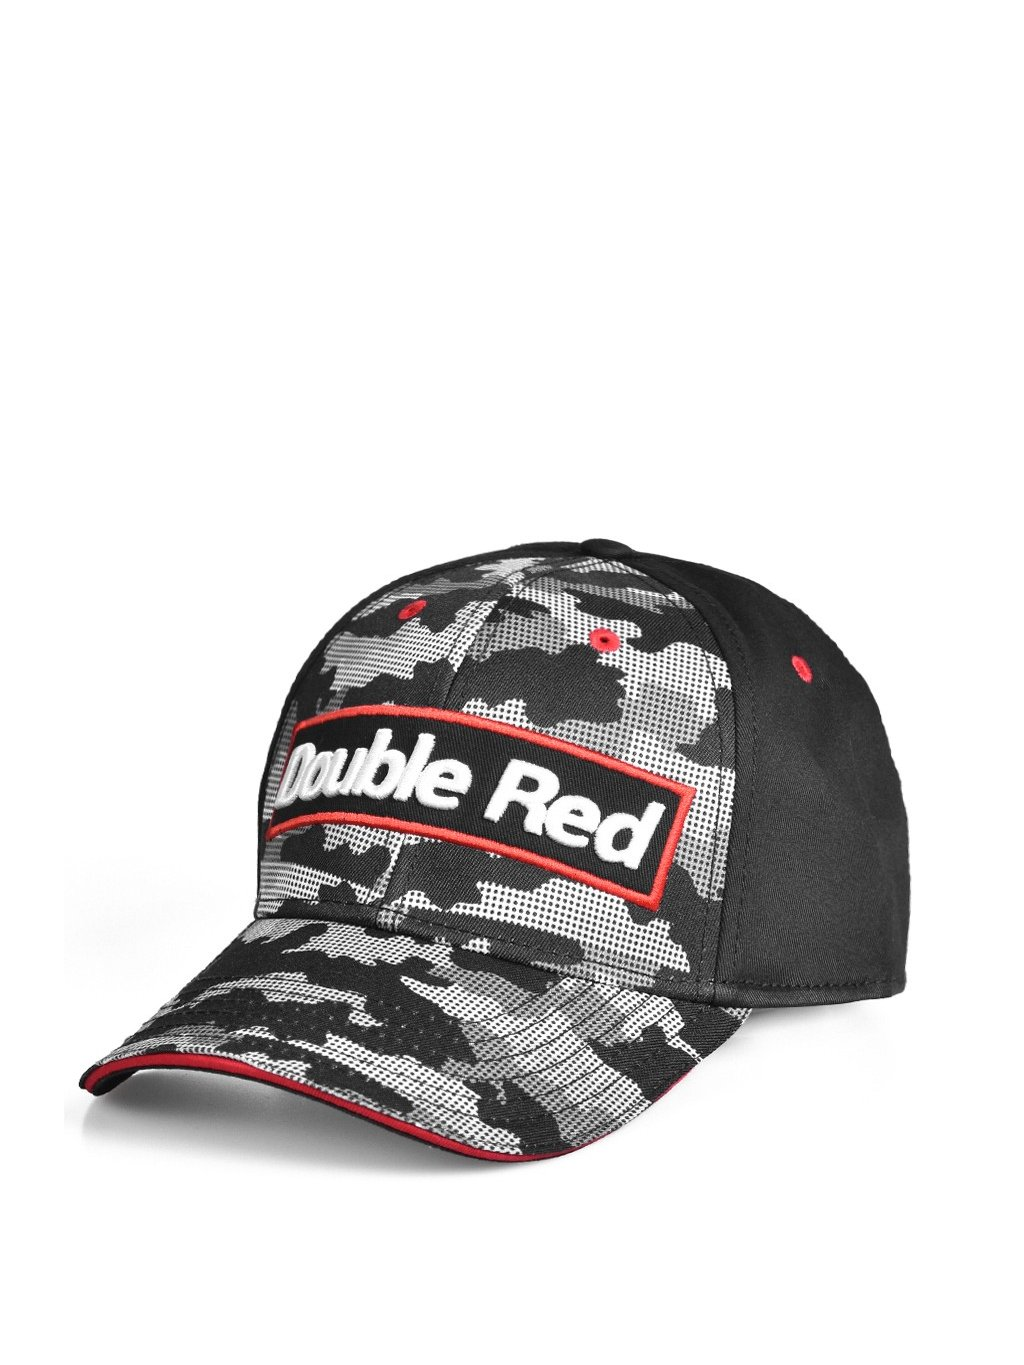 Kšiltovka DOUBLE RED Soldier TRADEMARK Edition Cap